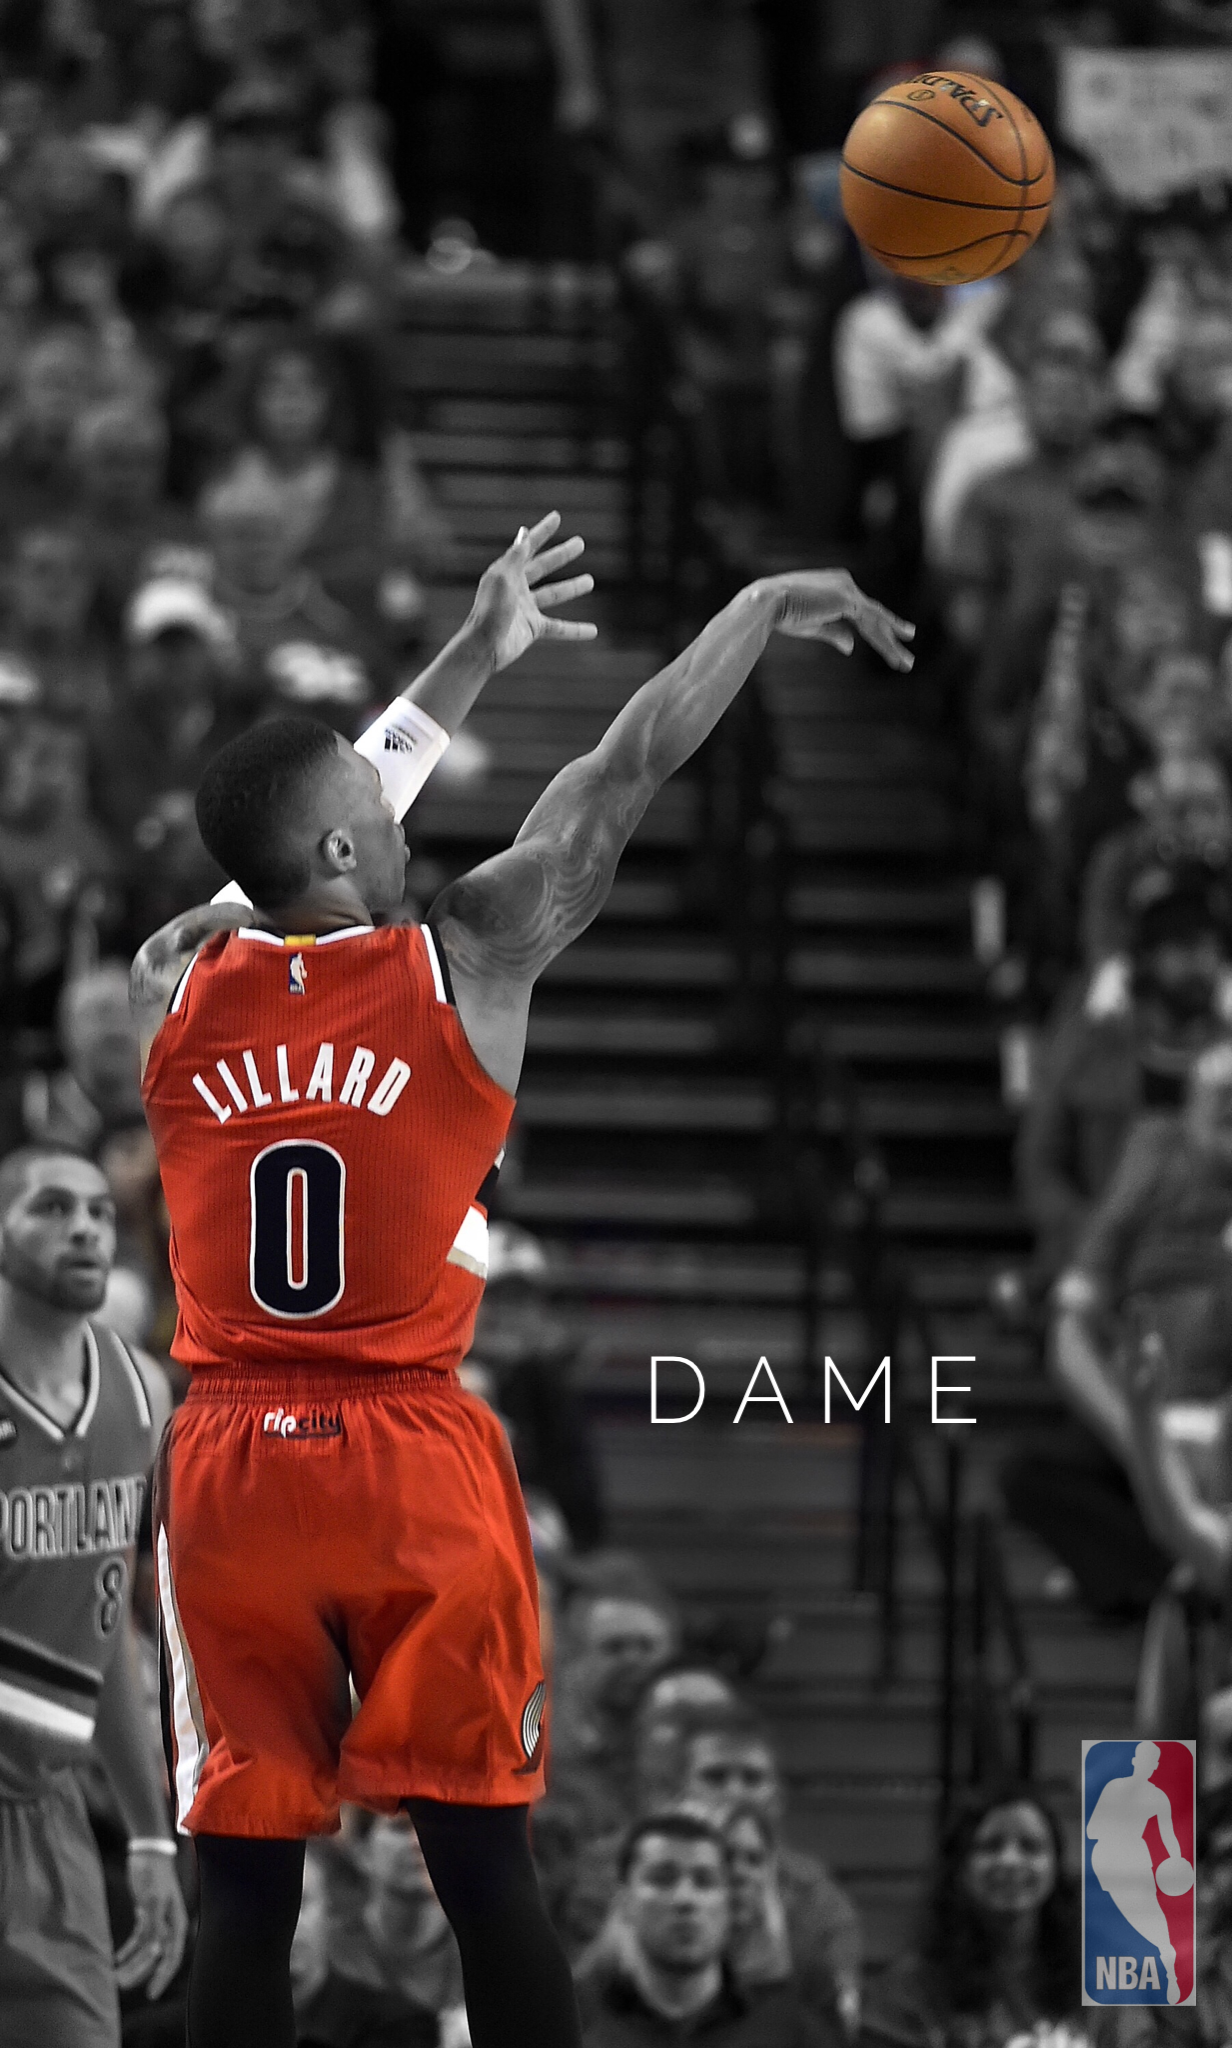 Portland Trail Blazer Damian Lillard. #RipCity Nba Wallpapers, Nike Headbands, Nba Basketball